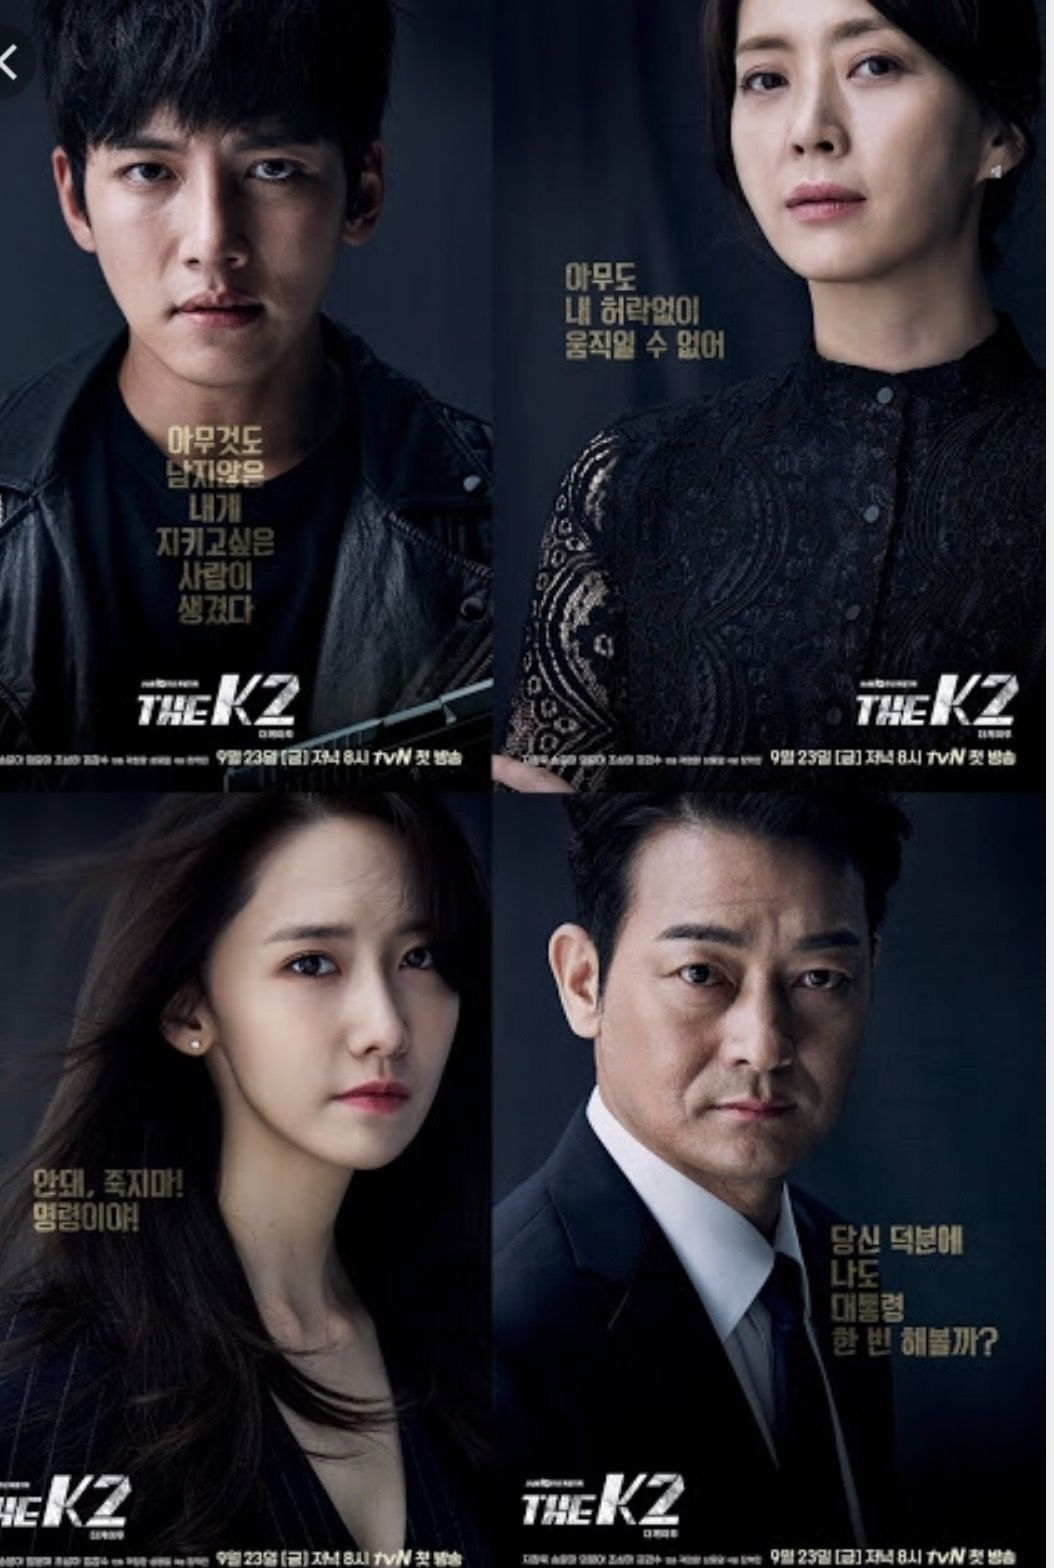 The K 2 Korean Drama Very Good City Hunter And Healer Feels All Over The Place Luved It Plus Ji Chang Wook All Kinds Of Hotness Drama Phim Han